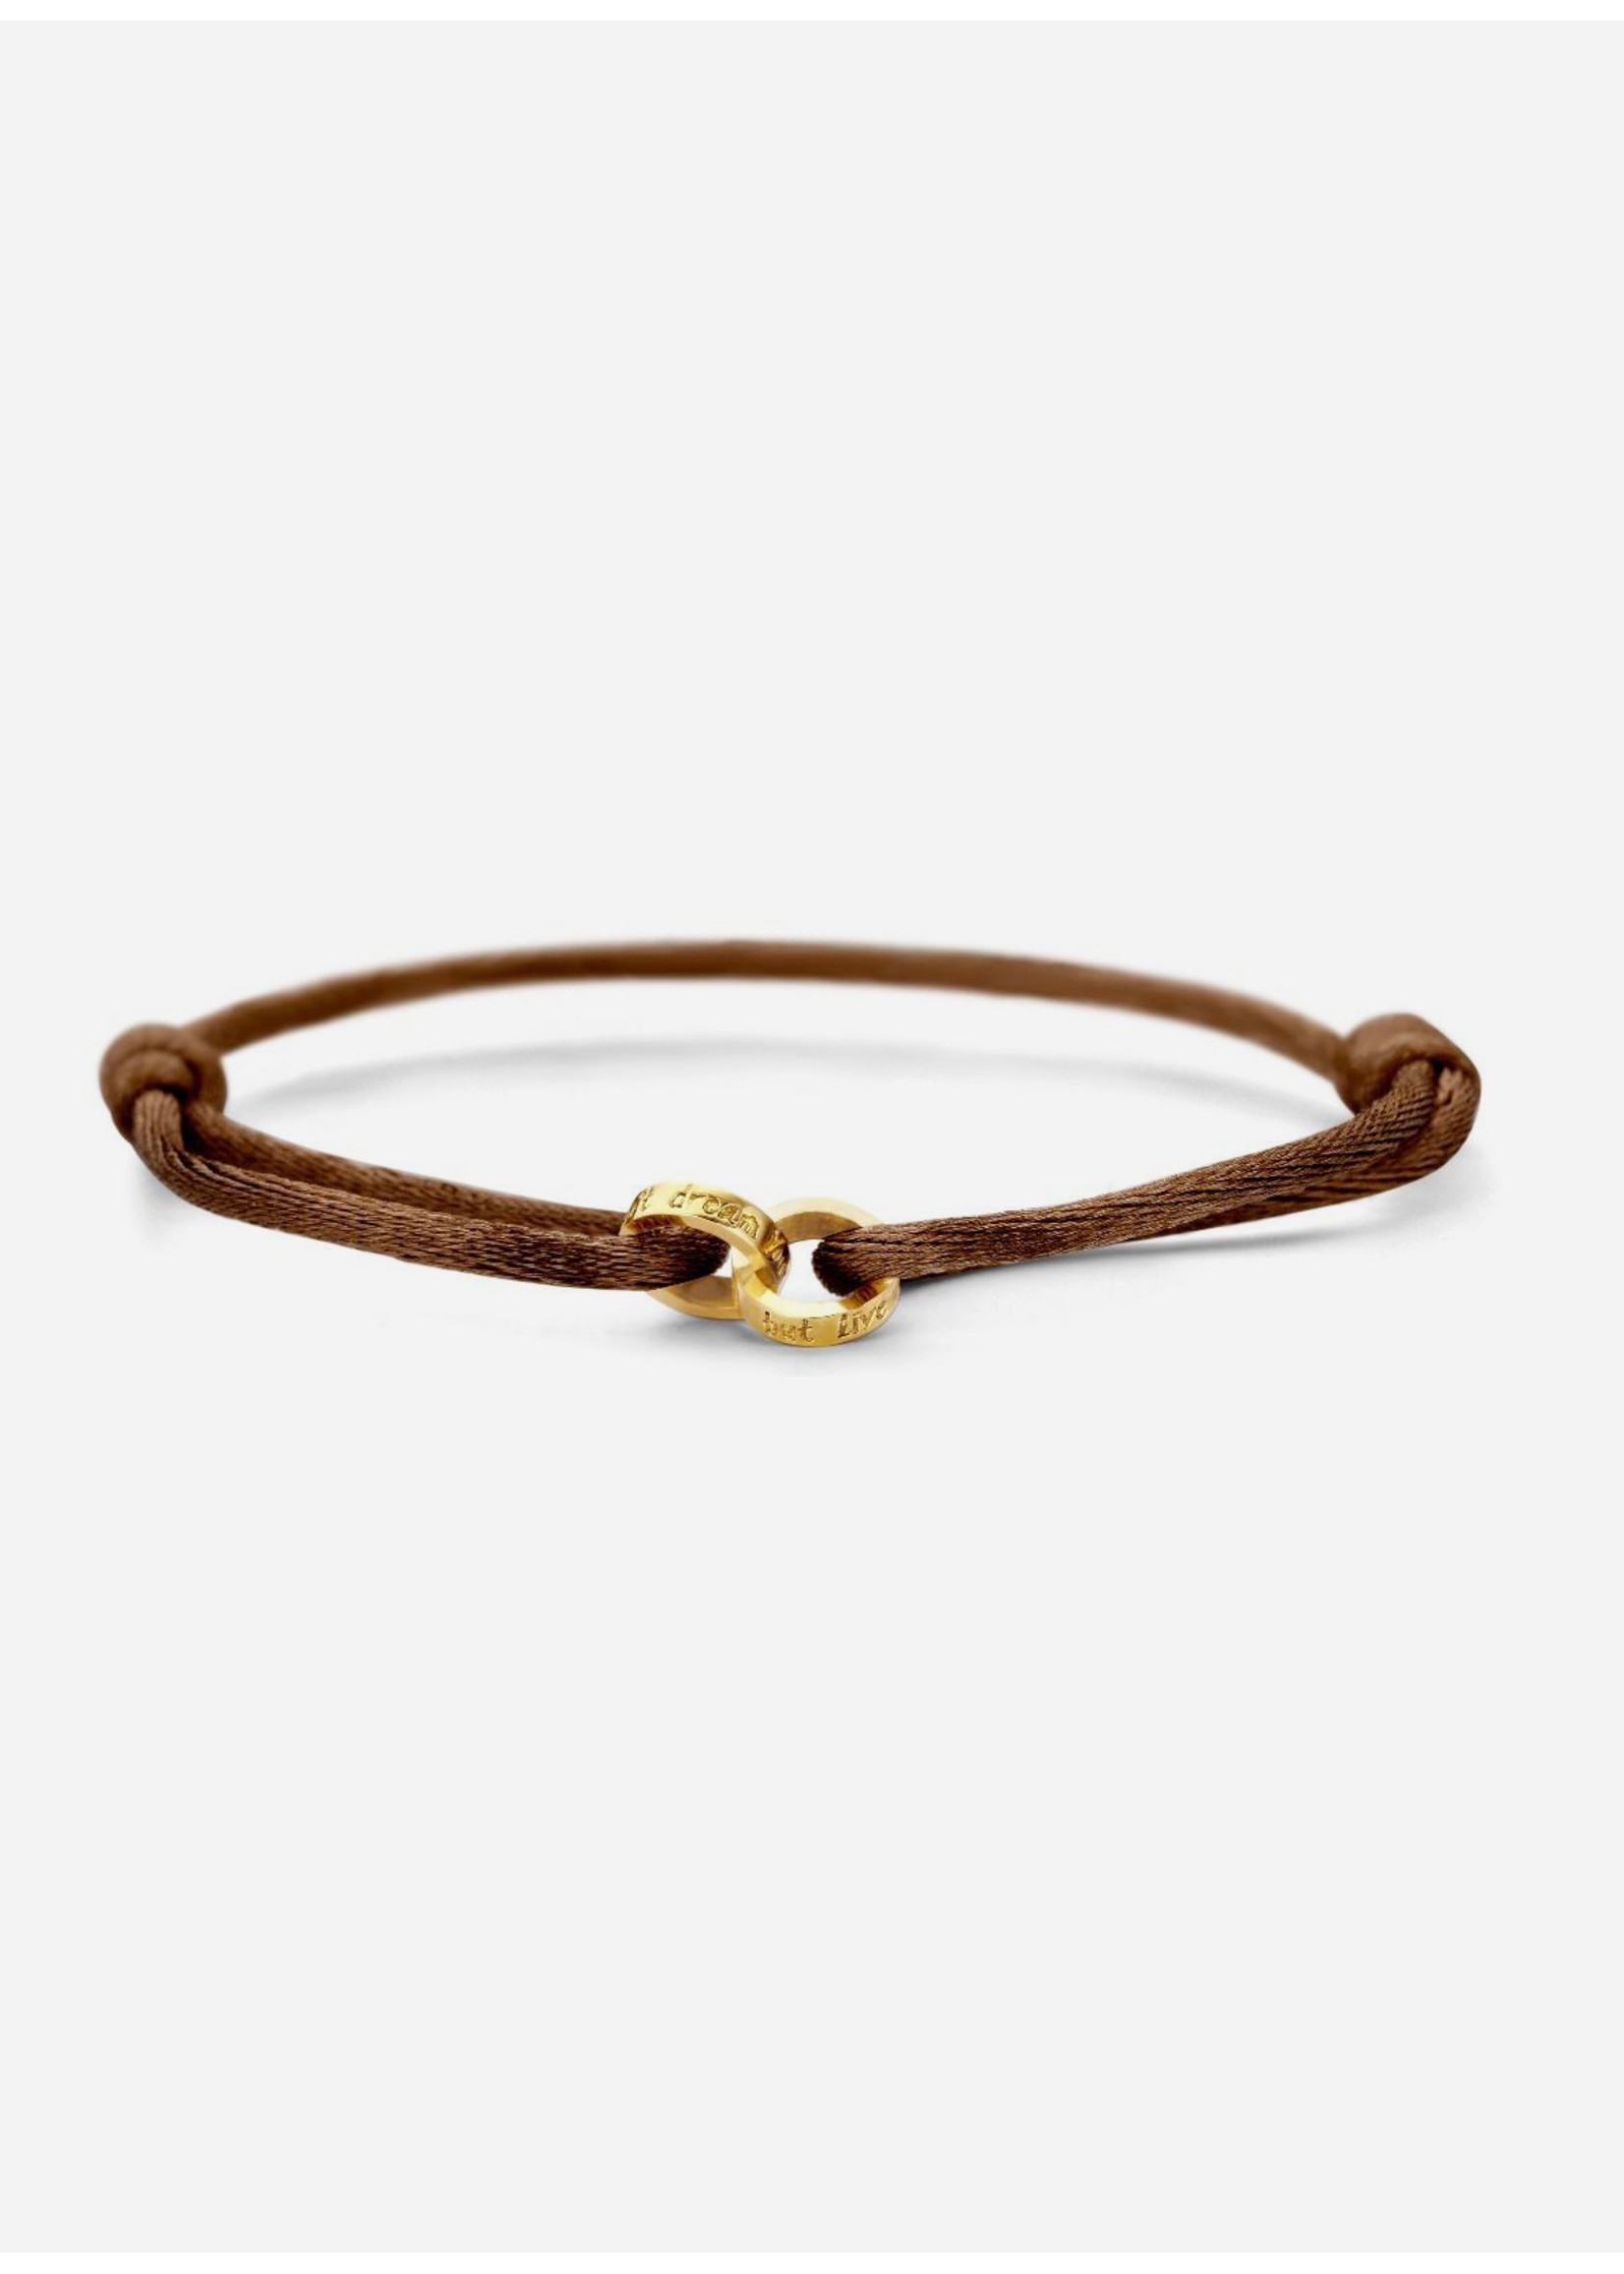 Just Franky Iconic bracelet double open circle cord with engraving